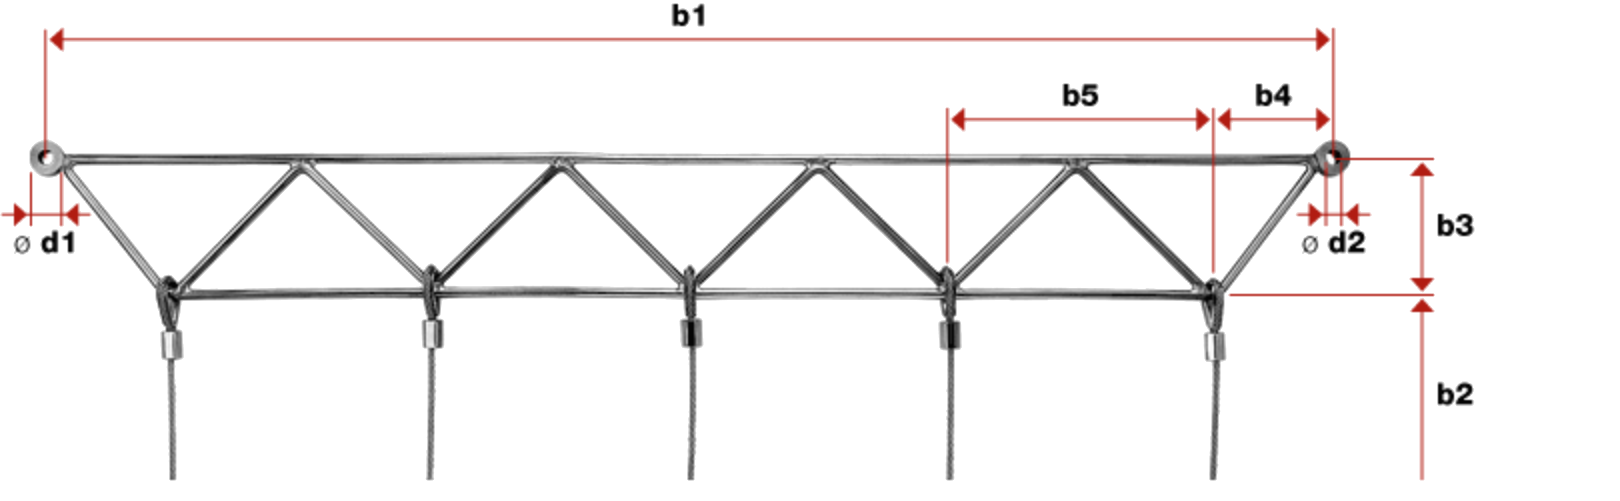 Greenguide Trellis Works with Swaged Loops Kit 1 (With 3 Vertical Wires) top frame measurements